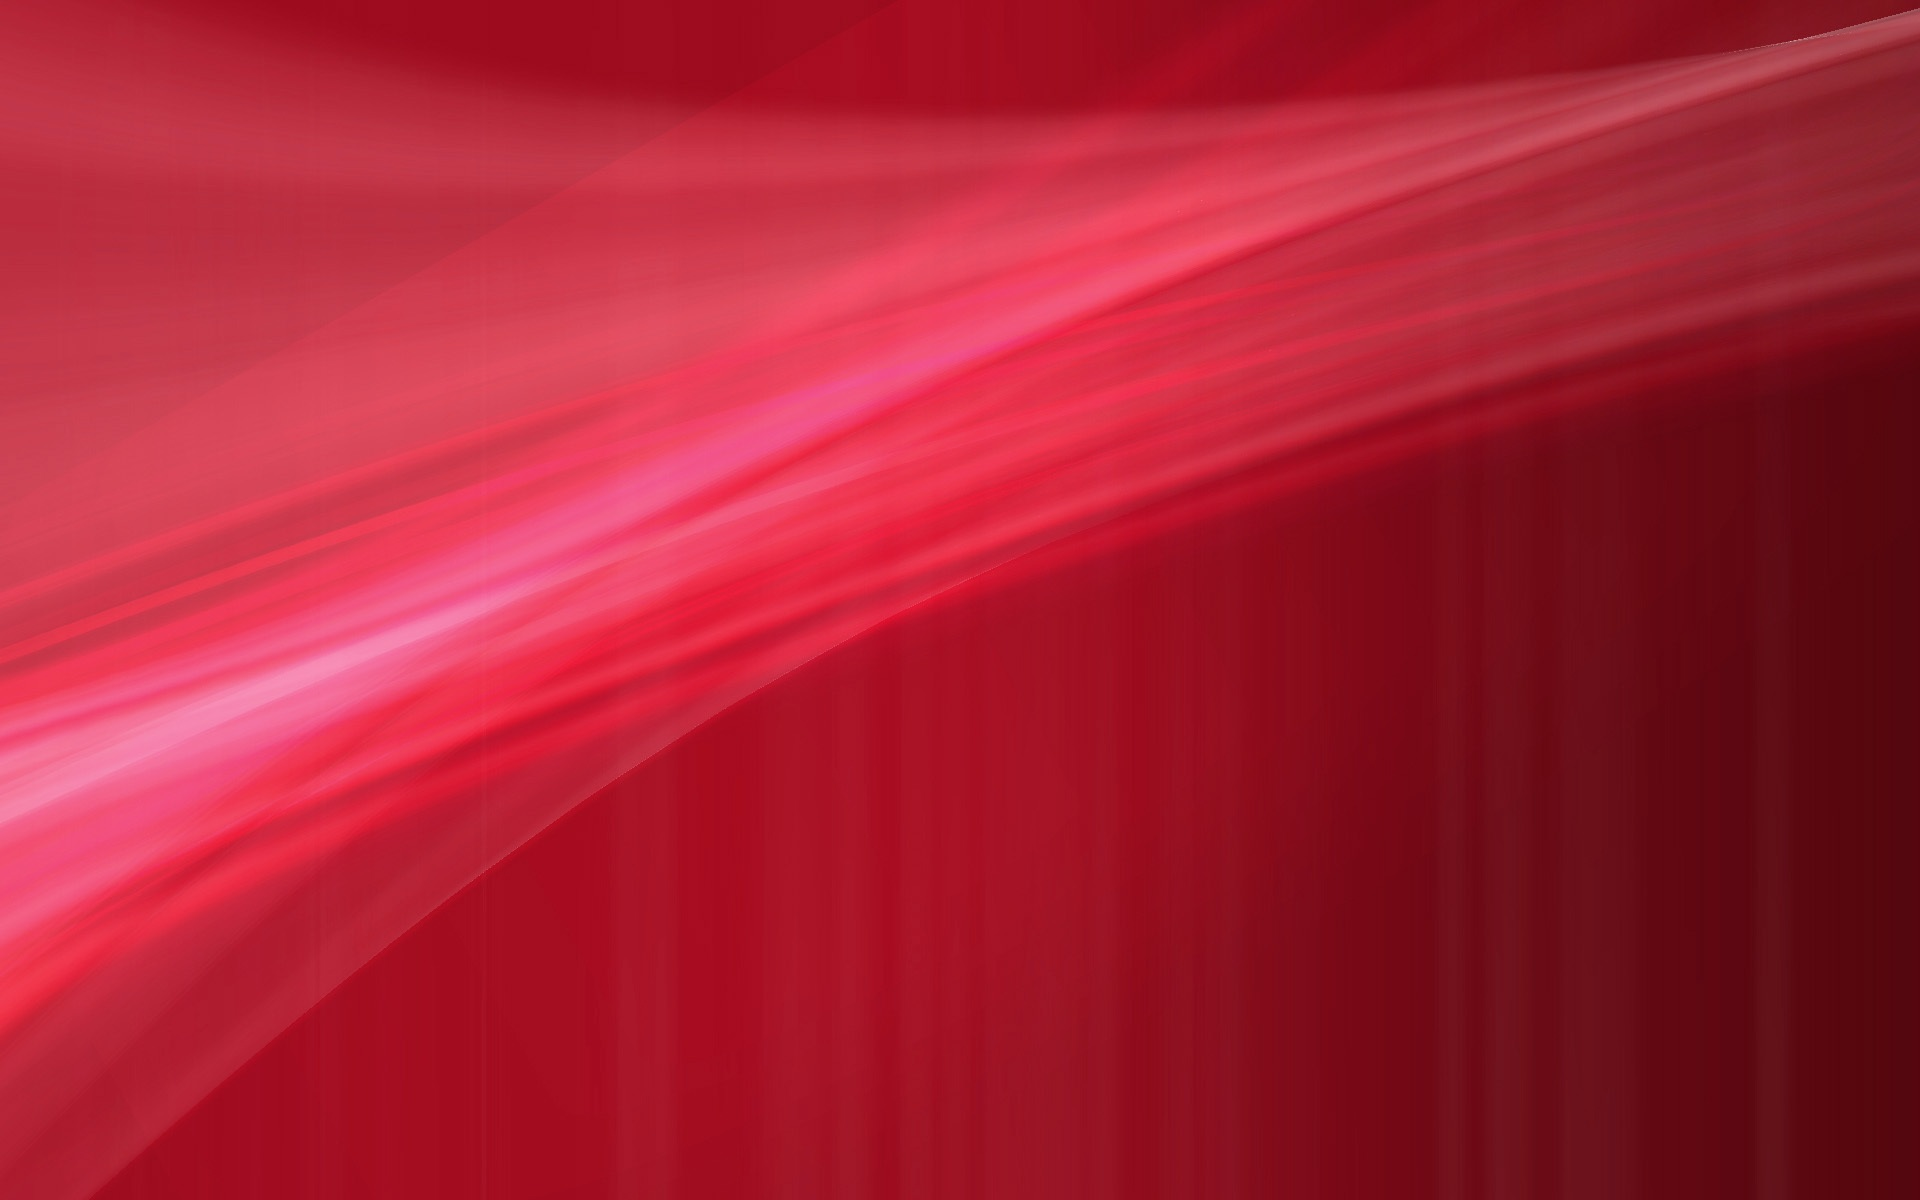 red wallpaper 9